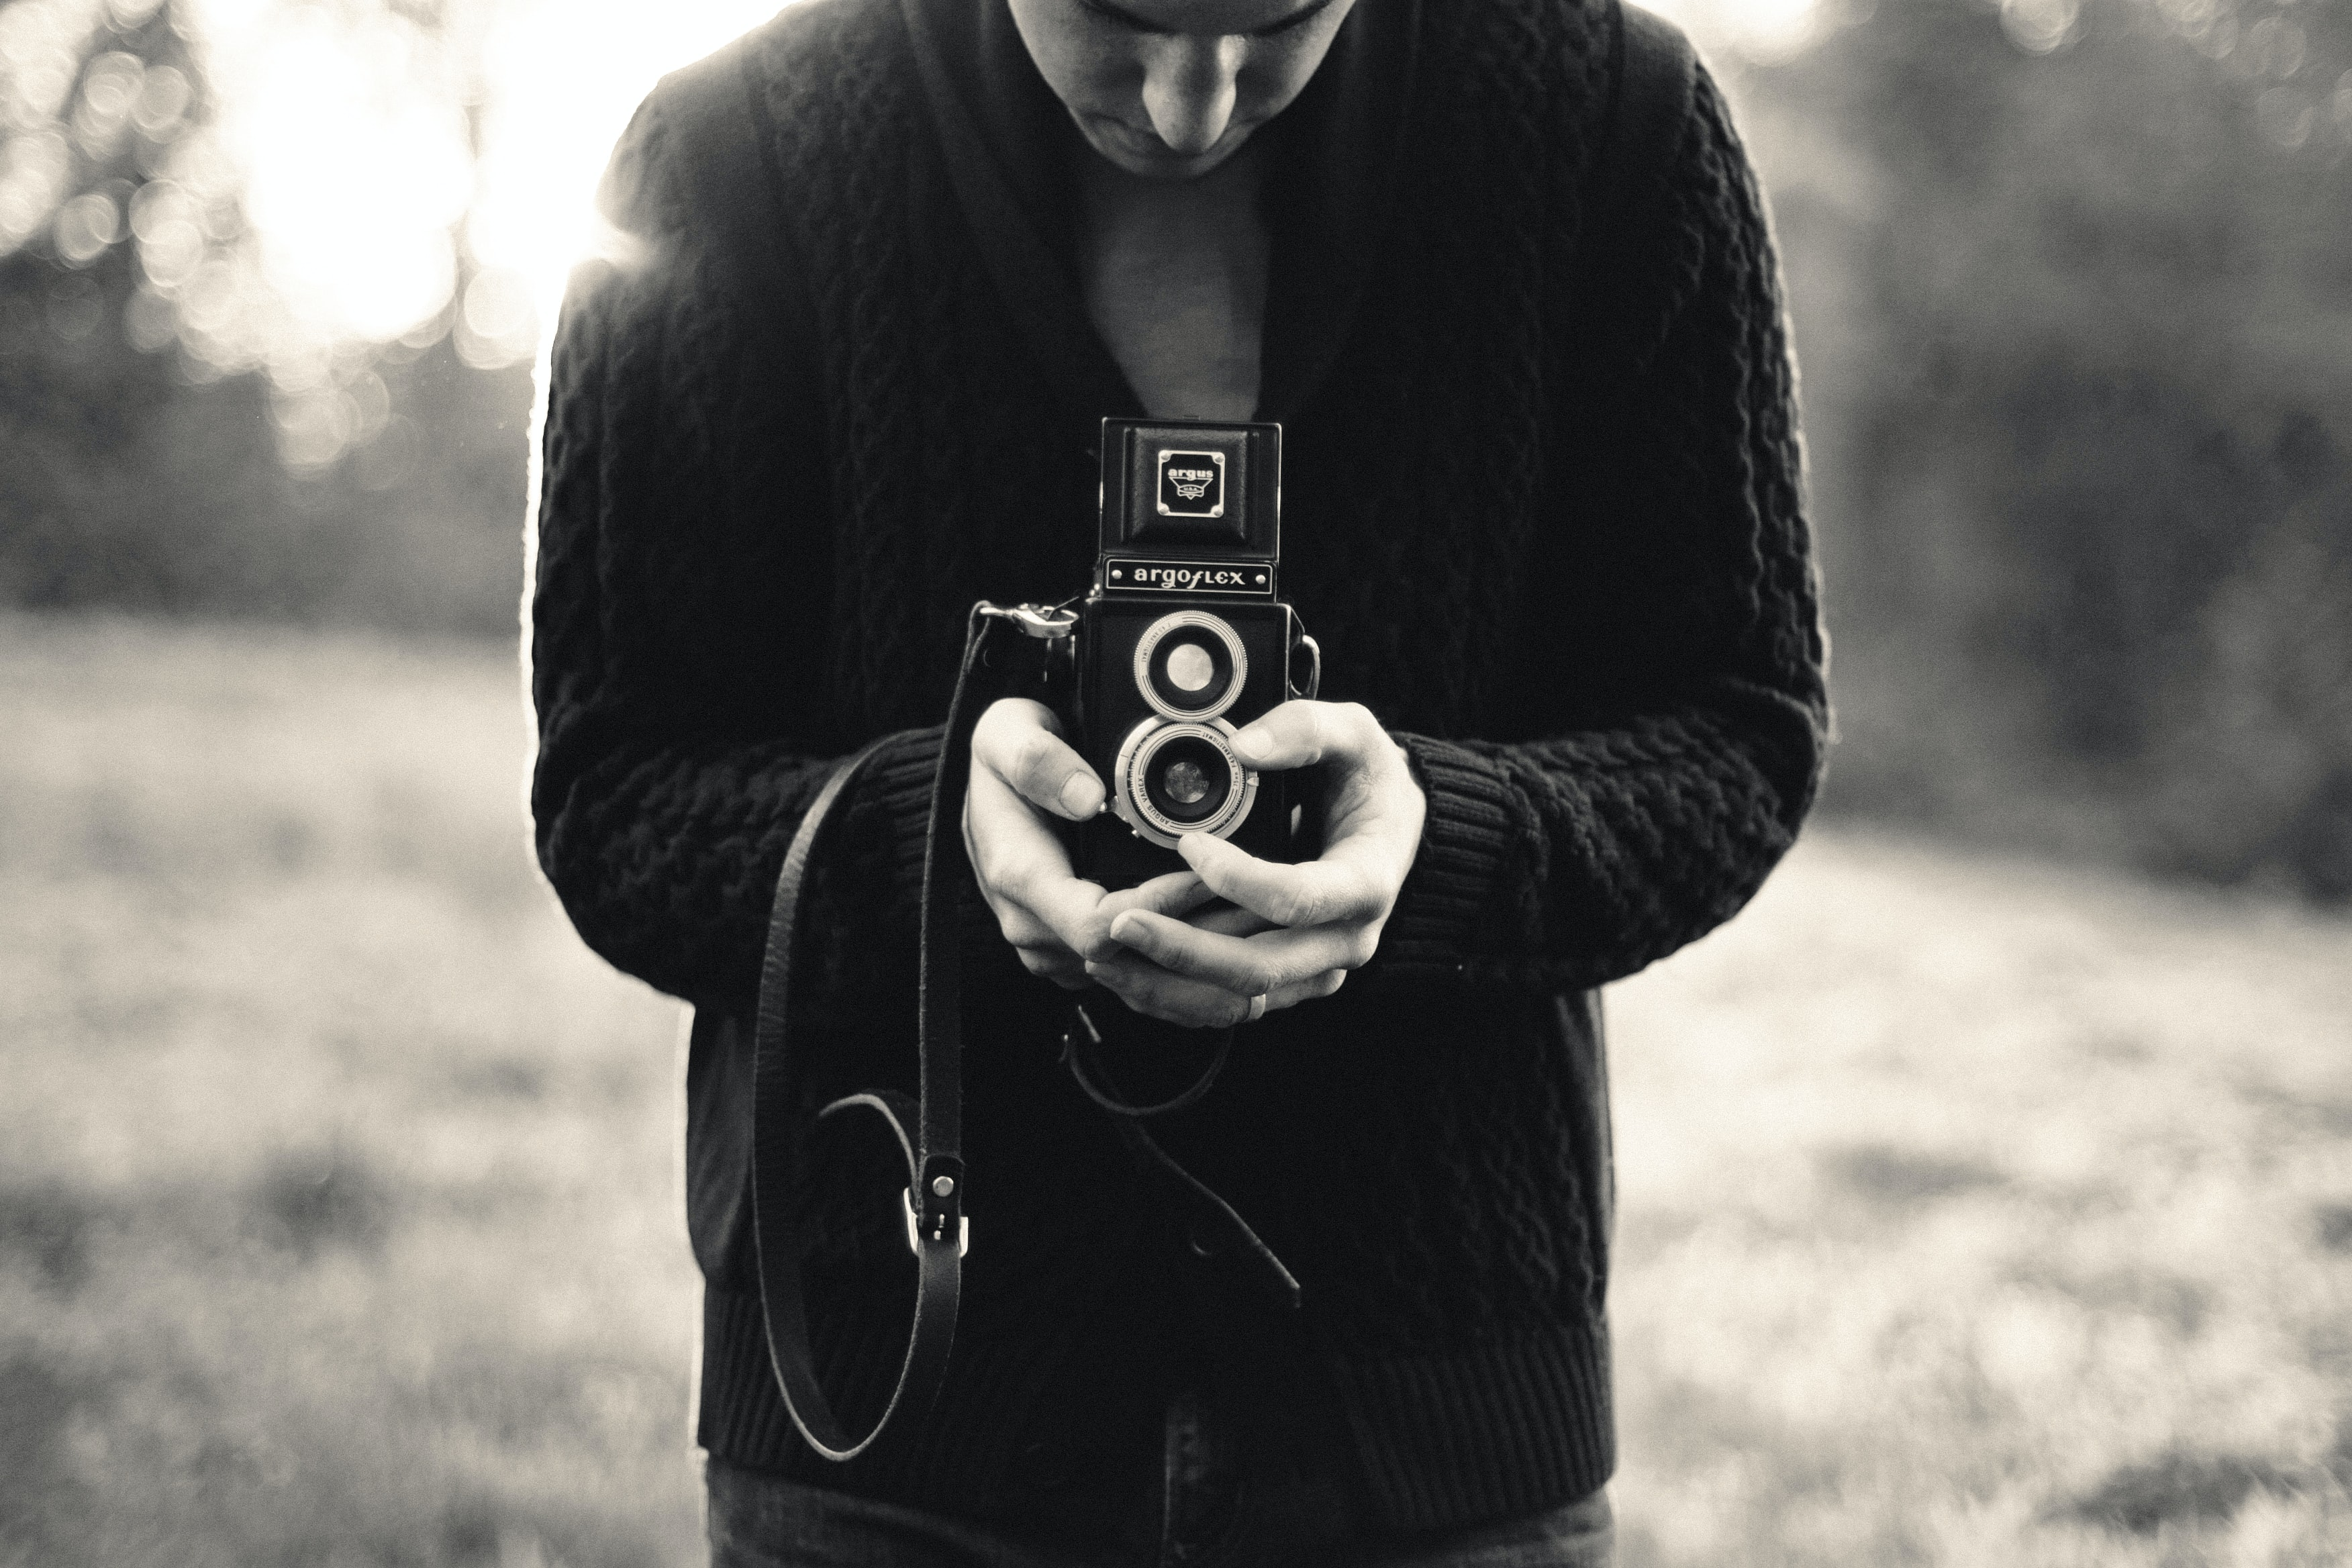 Black and white shot of man in black cardigan holding vintage camera with grass in background